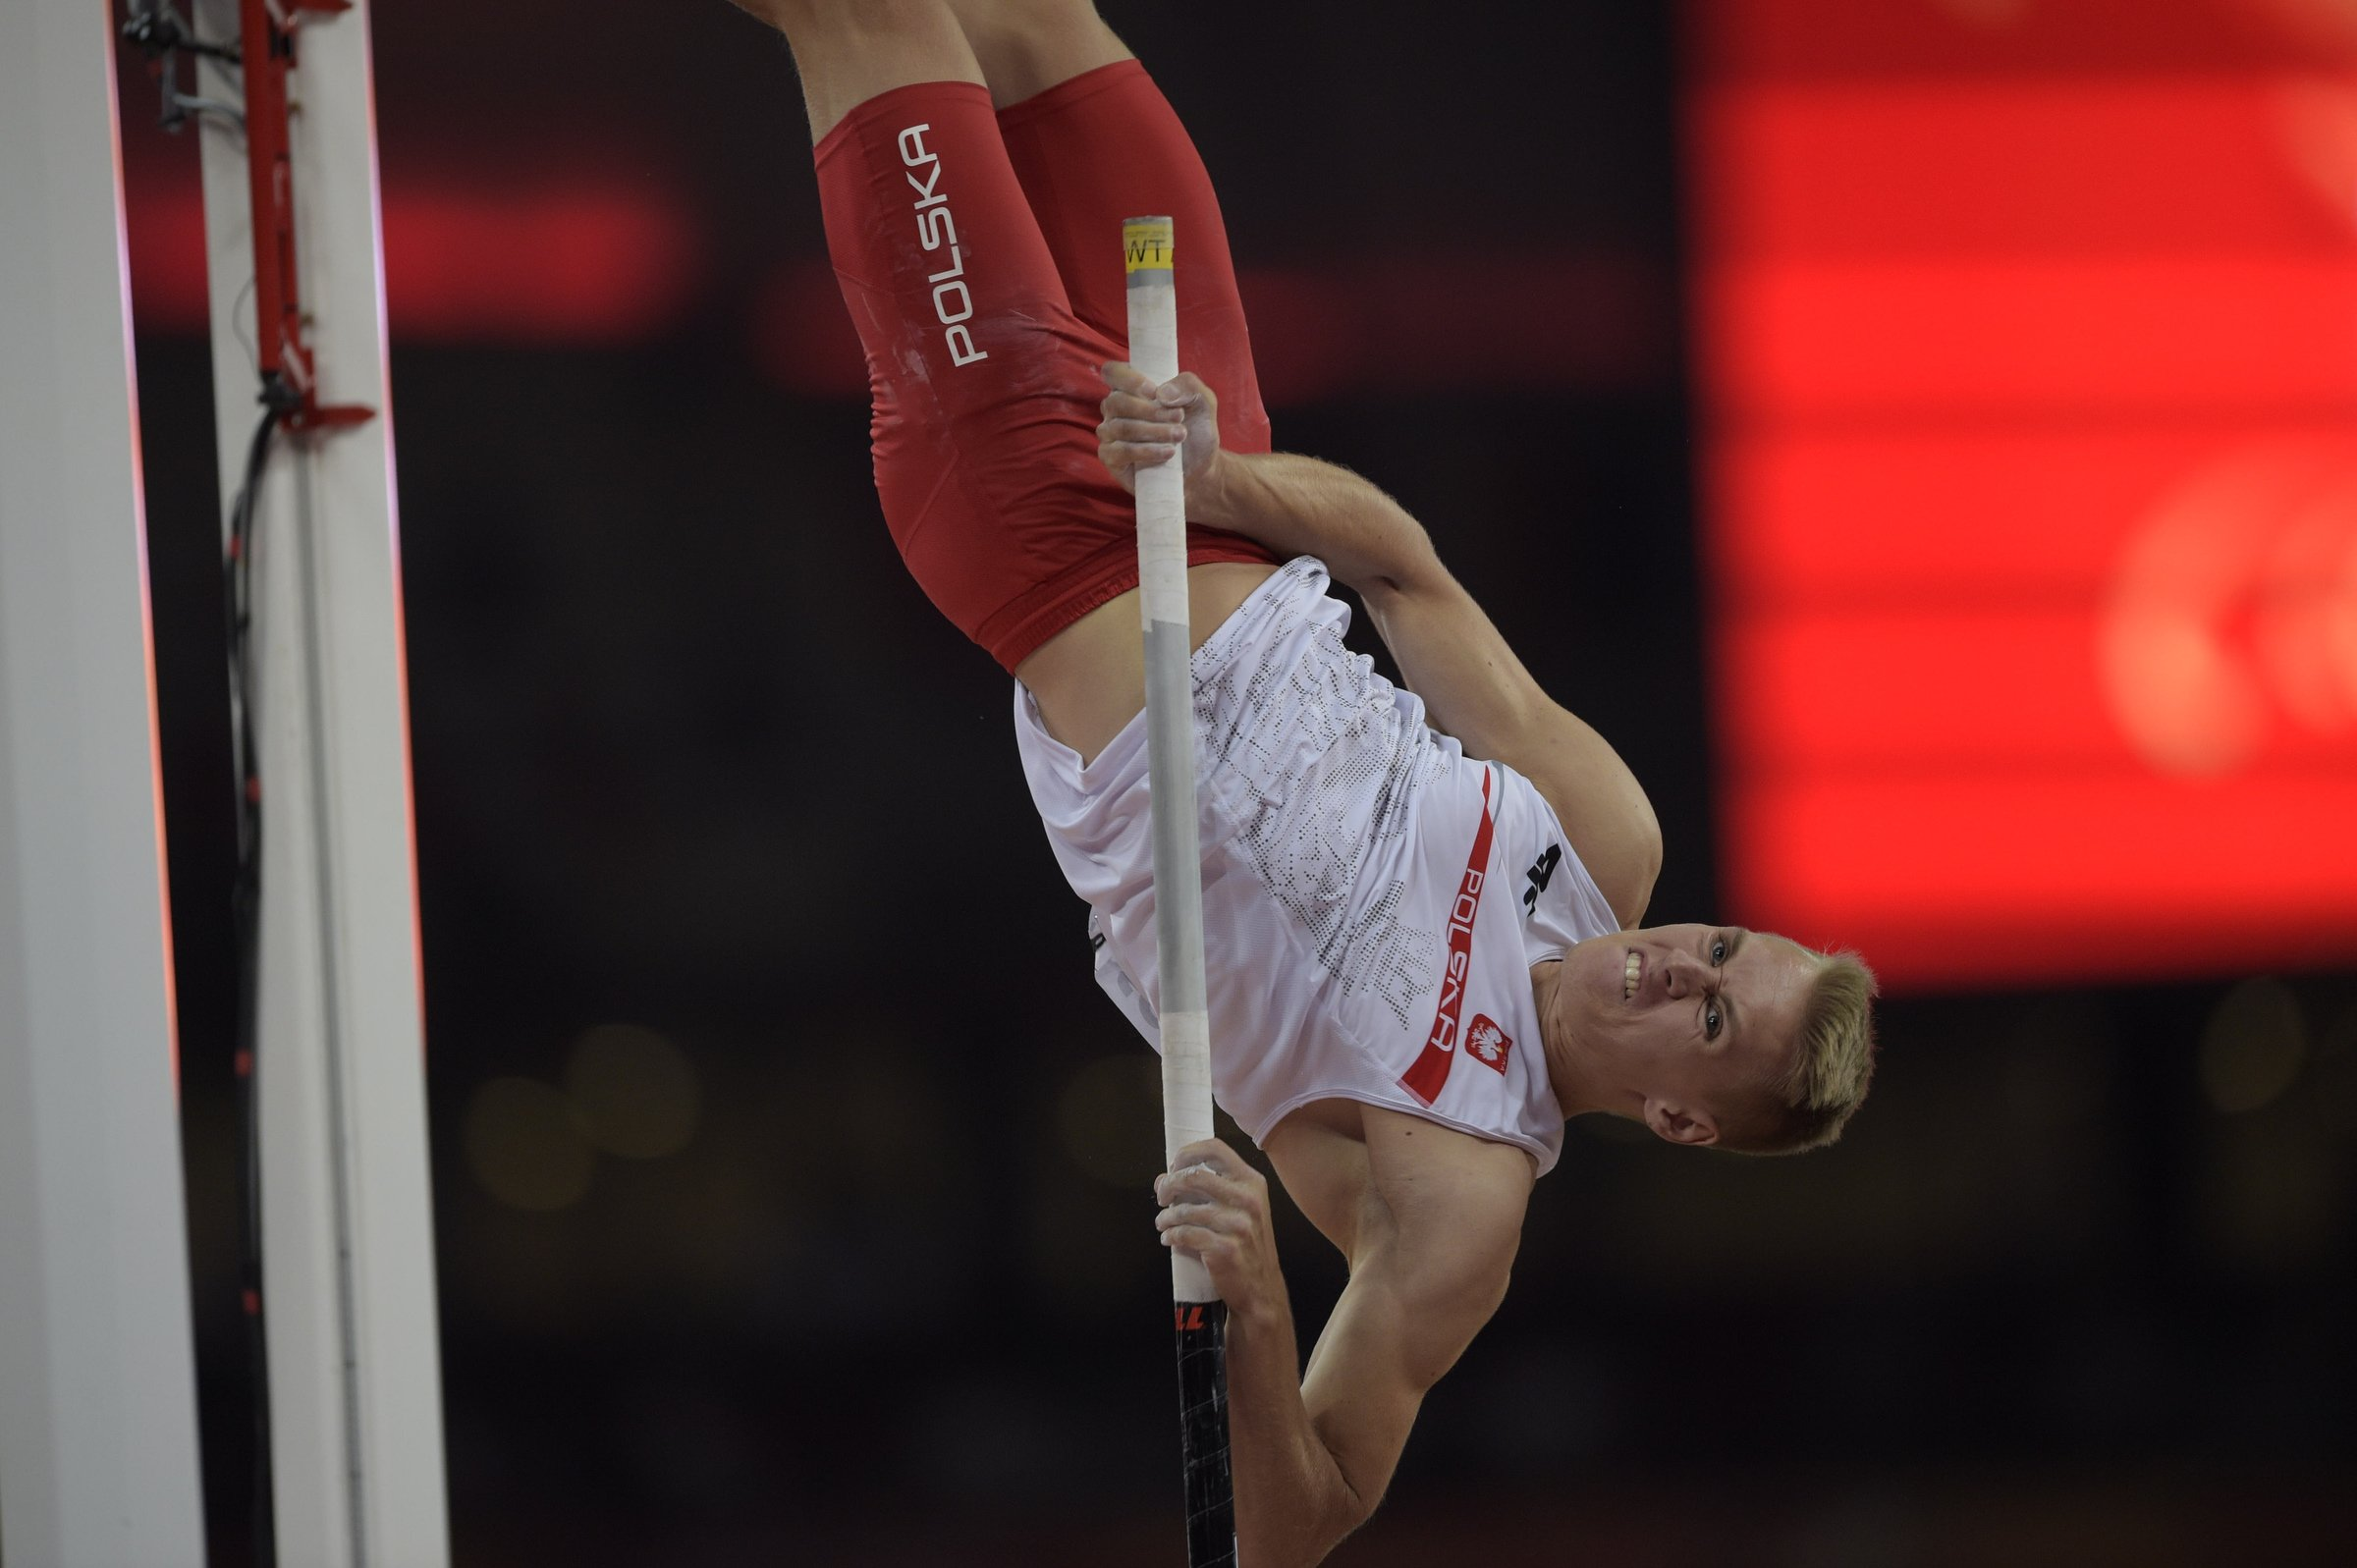 Robert Sobera (POL) clears the 5.50-meter height in the men's pole vault competition.